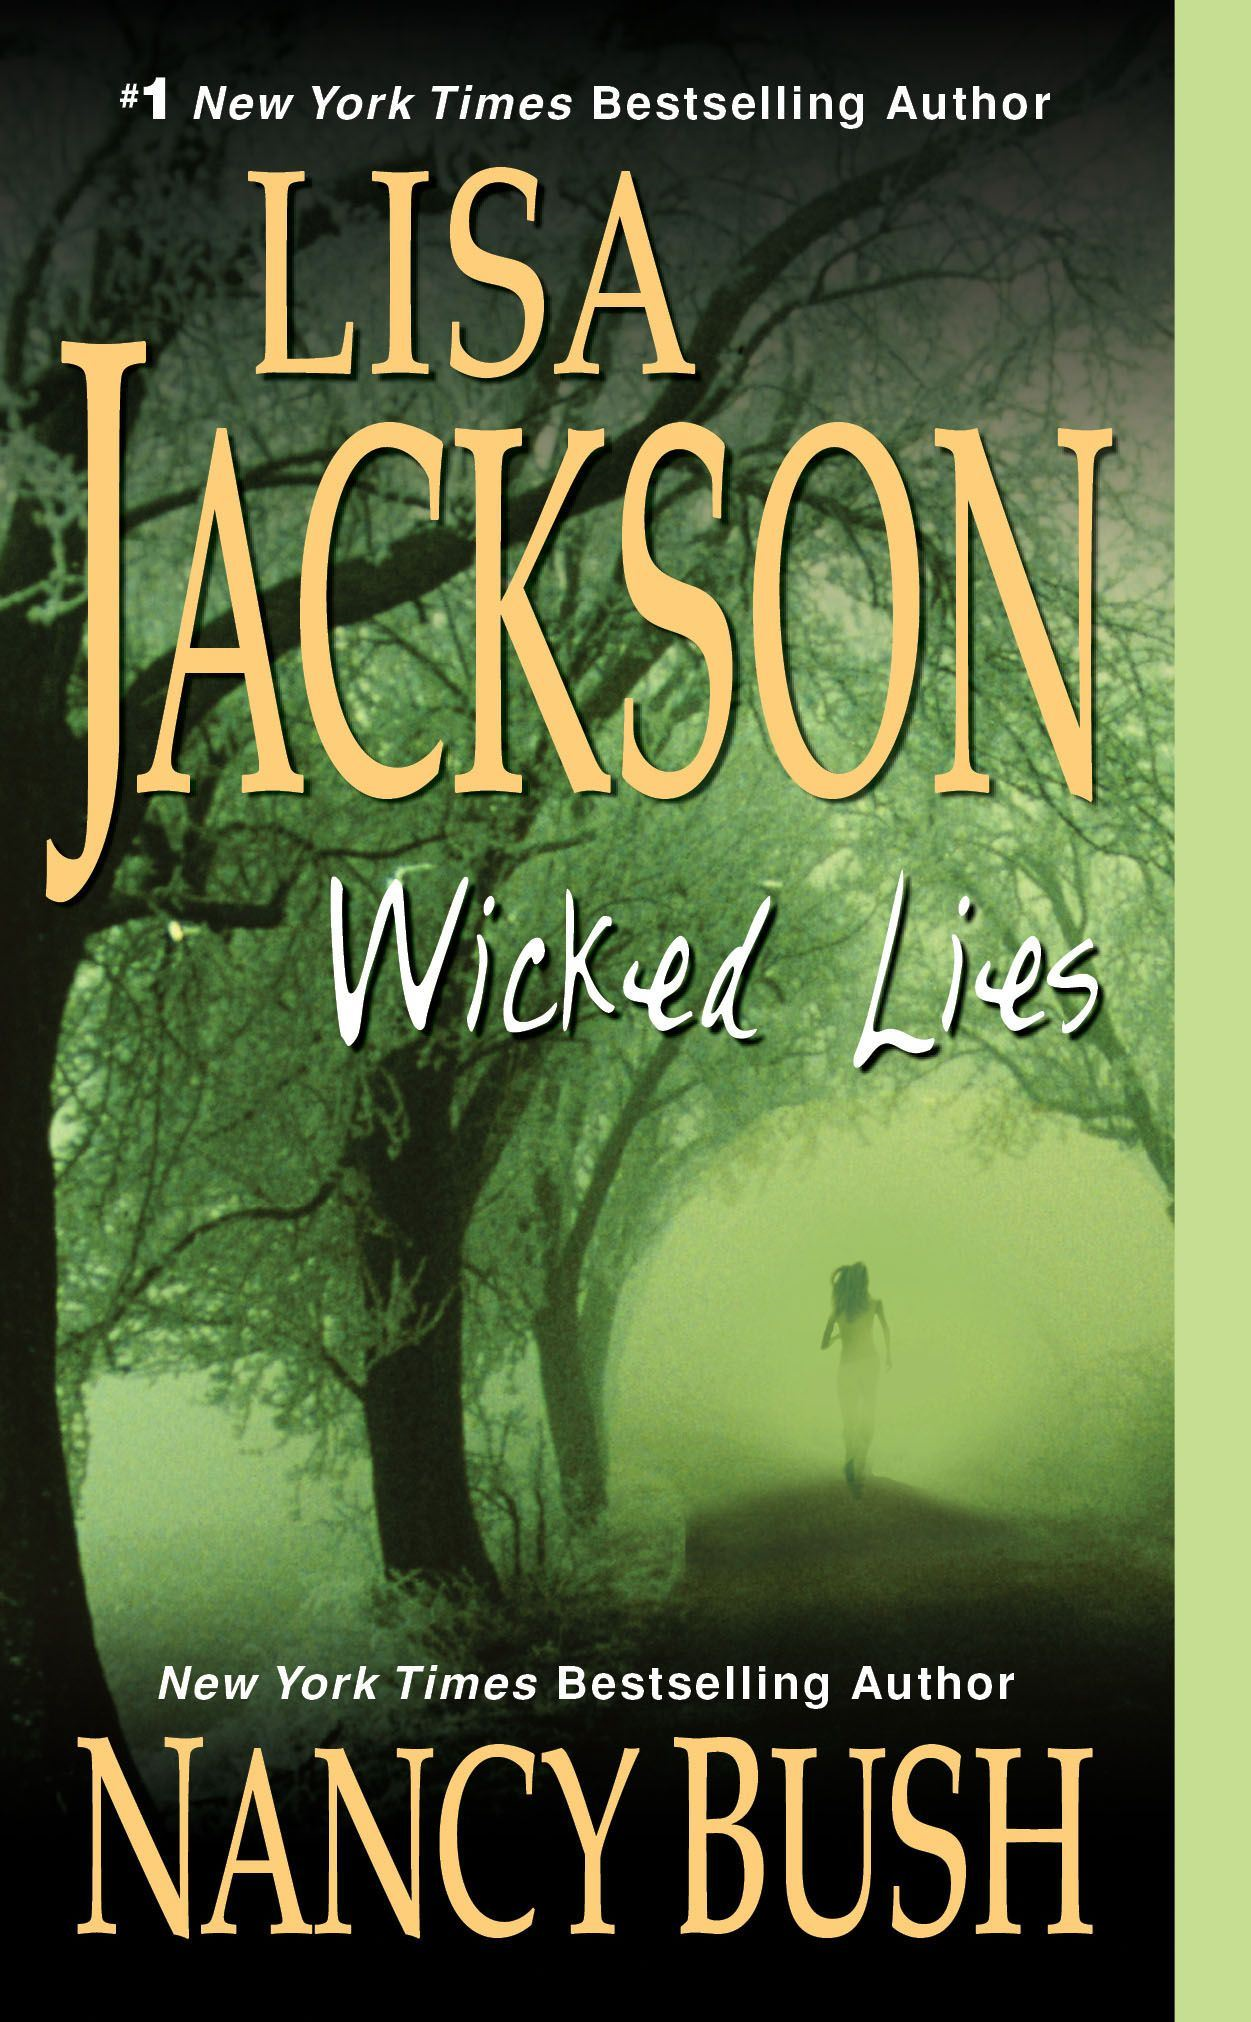 Wicked Lies By: Lisa Jackson;Nancy Bush